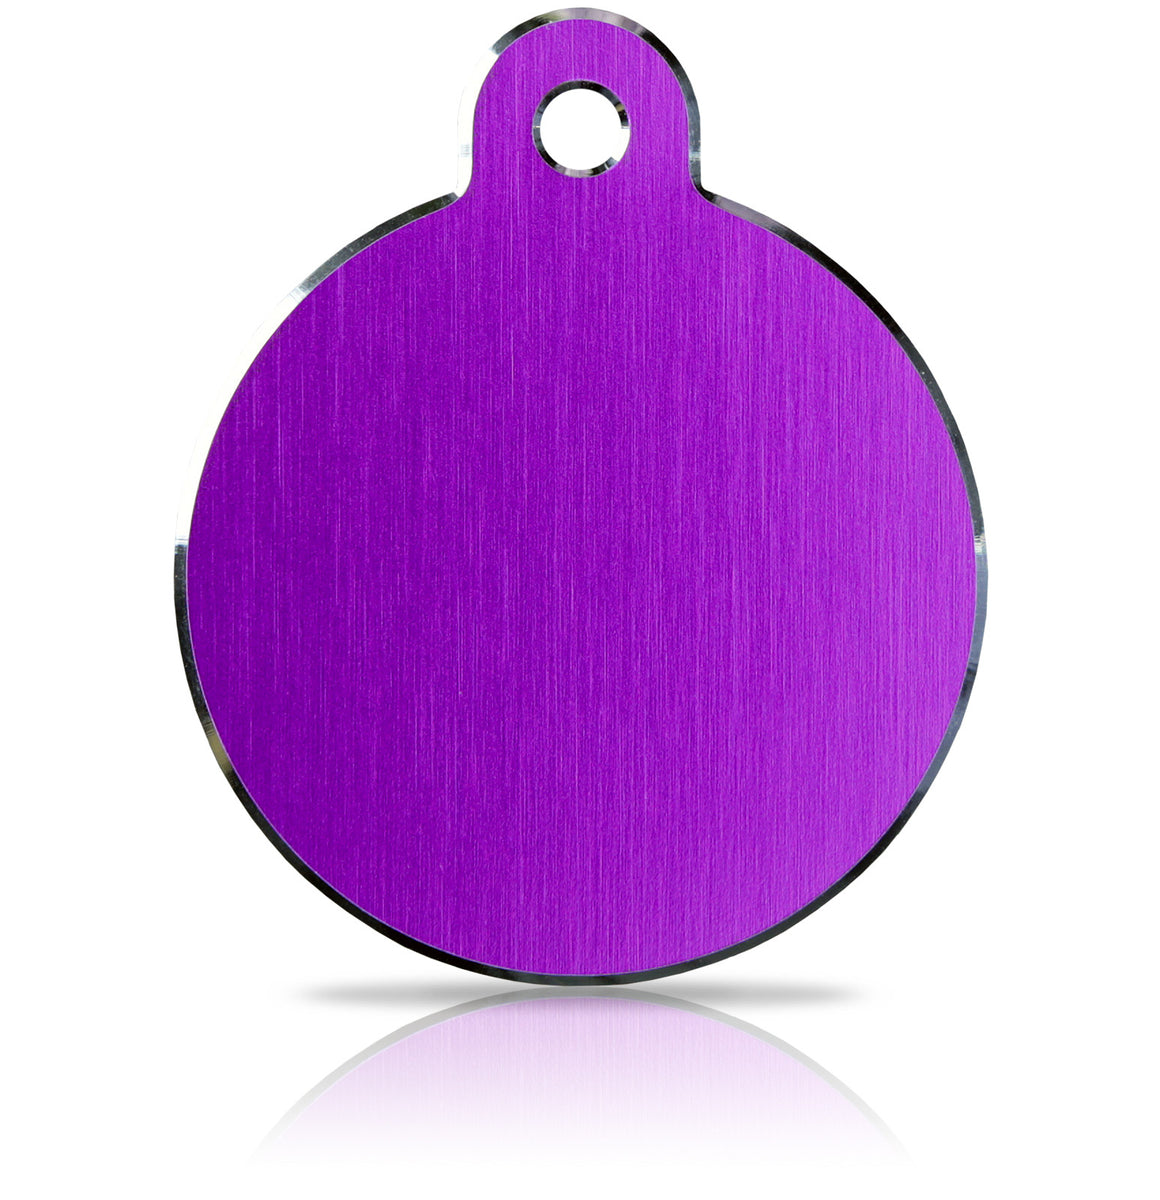 TaggIT Hi-Line Large Disc Purple iMarc Pet Engraving Tag